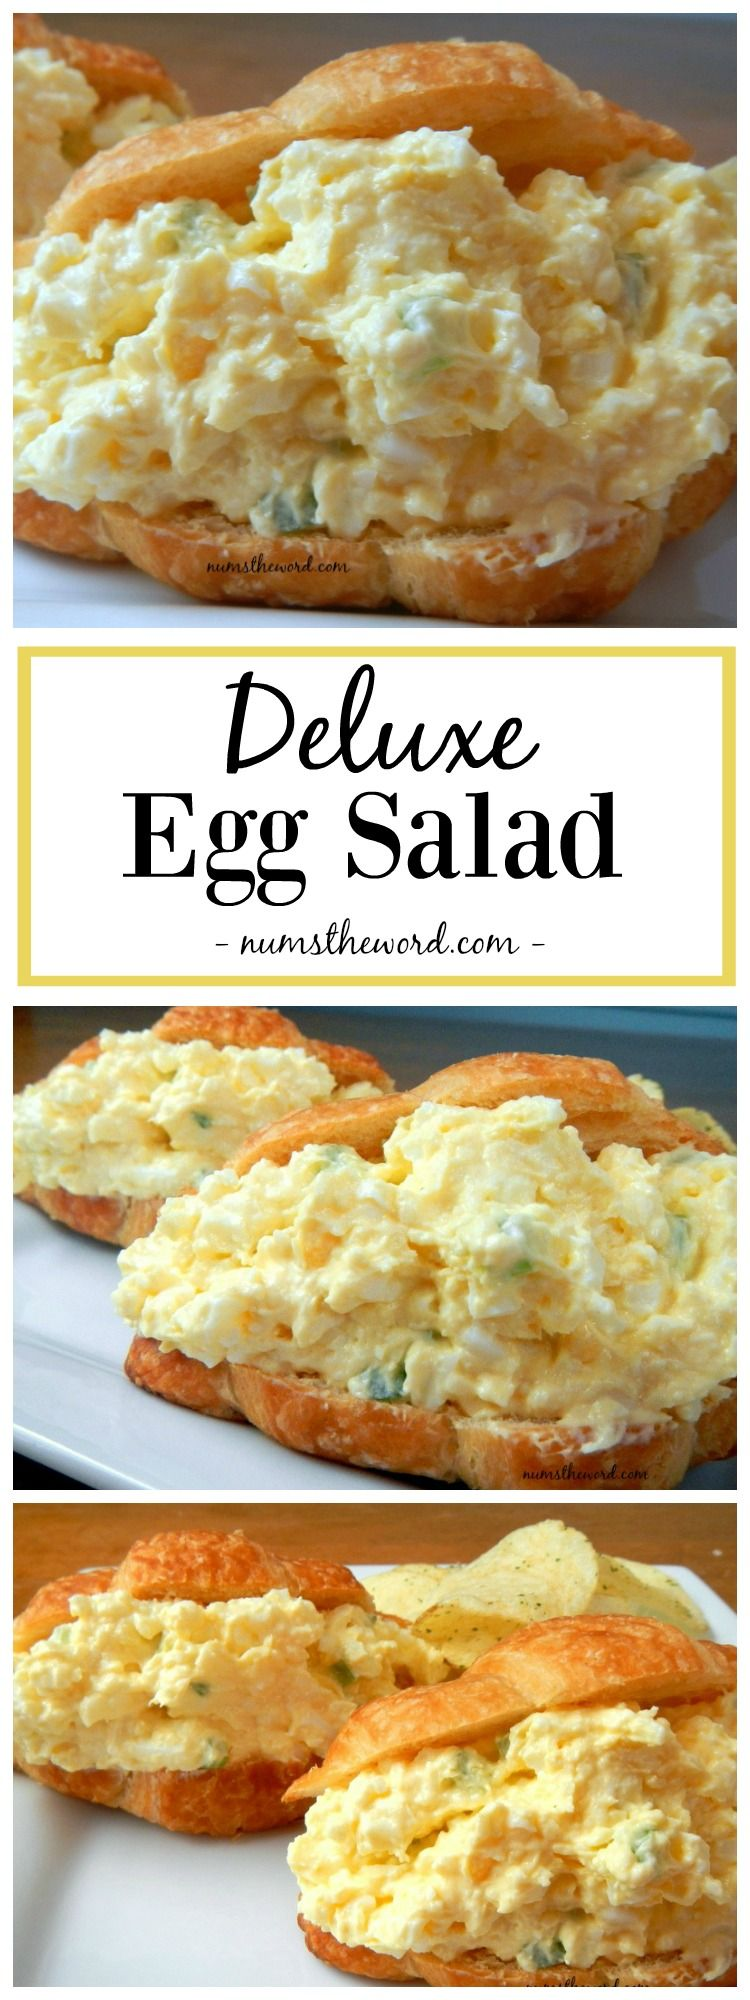 Looking for an upgrade on the traditional egg salad? Try this one! It includes cream cheese, grated onions and is by far my favorite version of egg salad! #creamcheeserecipes